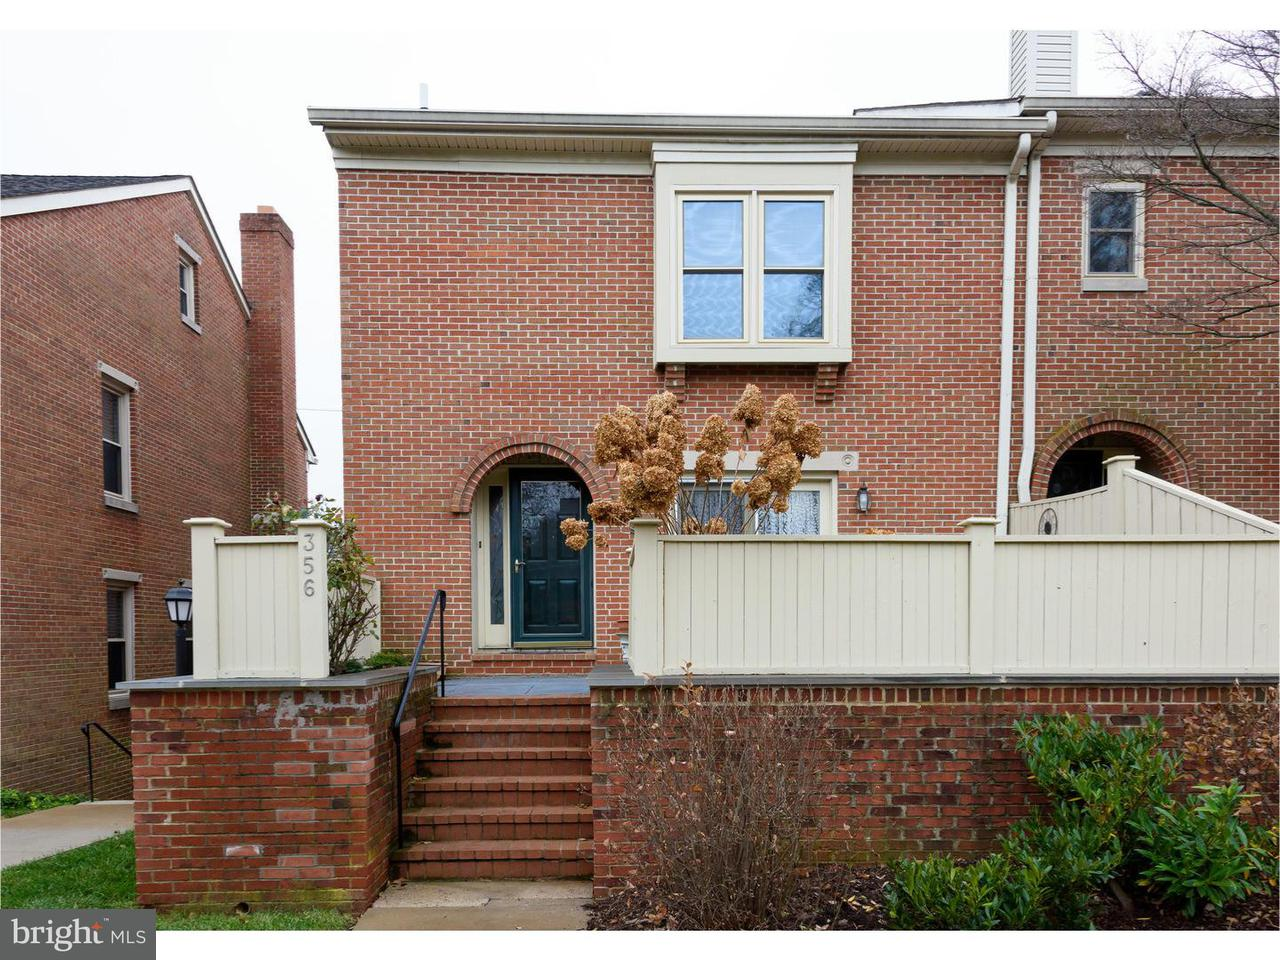 356 N Church West Chester , PA 19380